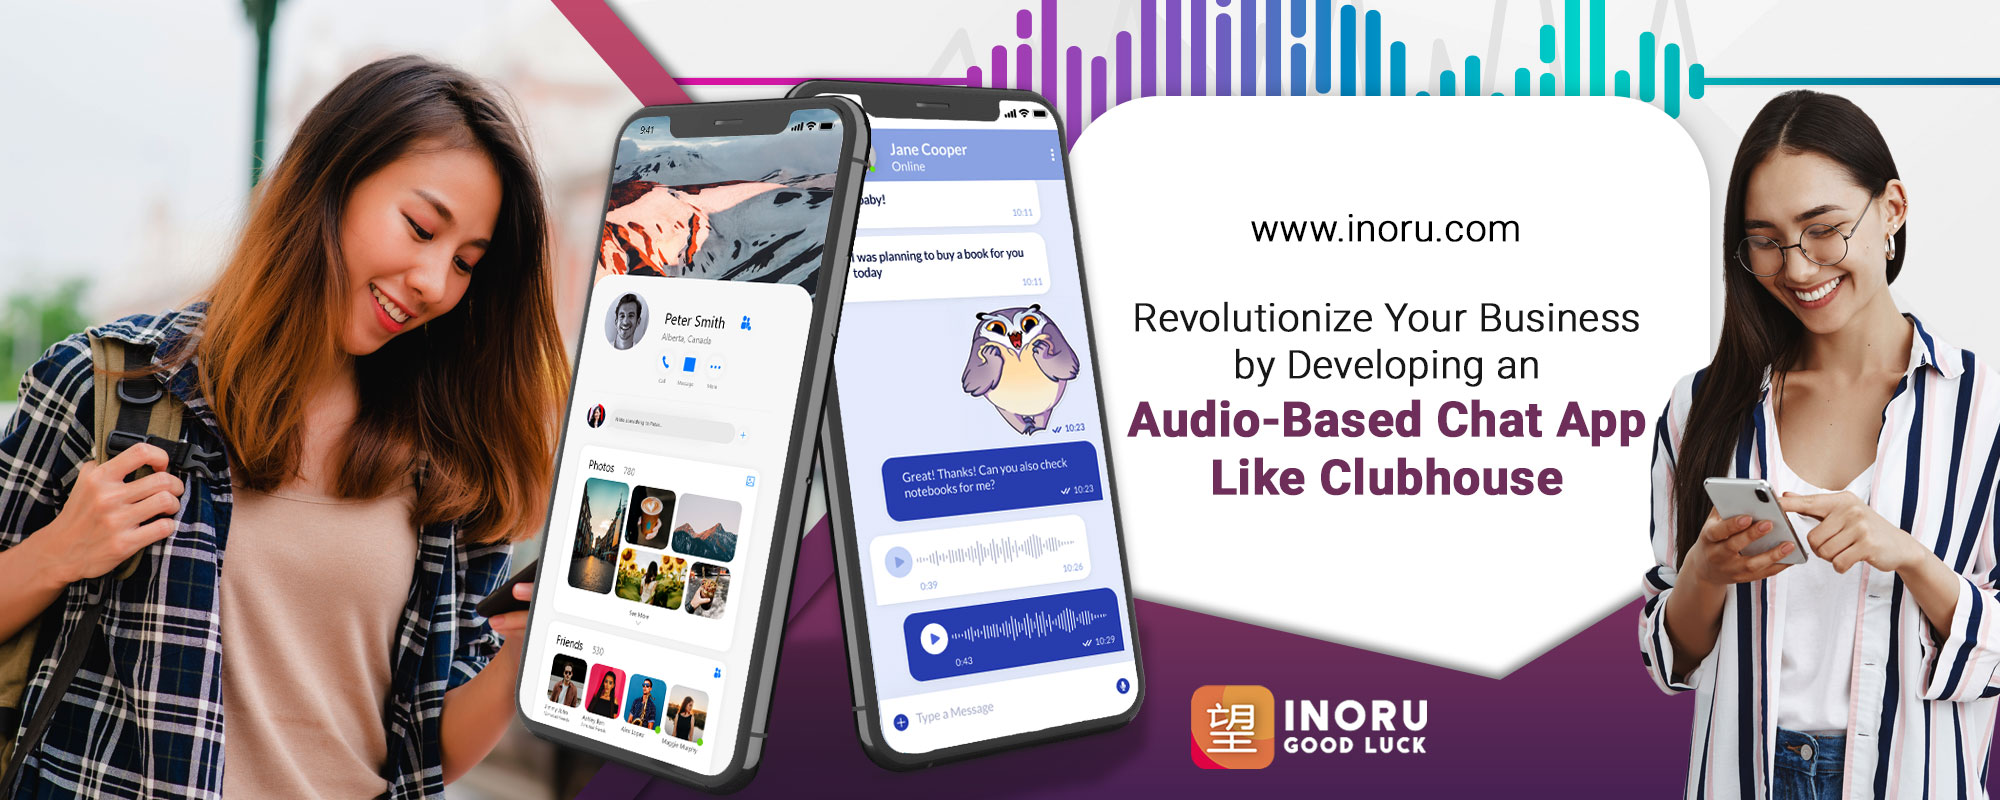 Revolutionize Your Business By Developing An Audio-Based Chat App Like Clubhouse - Inoru